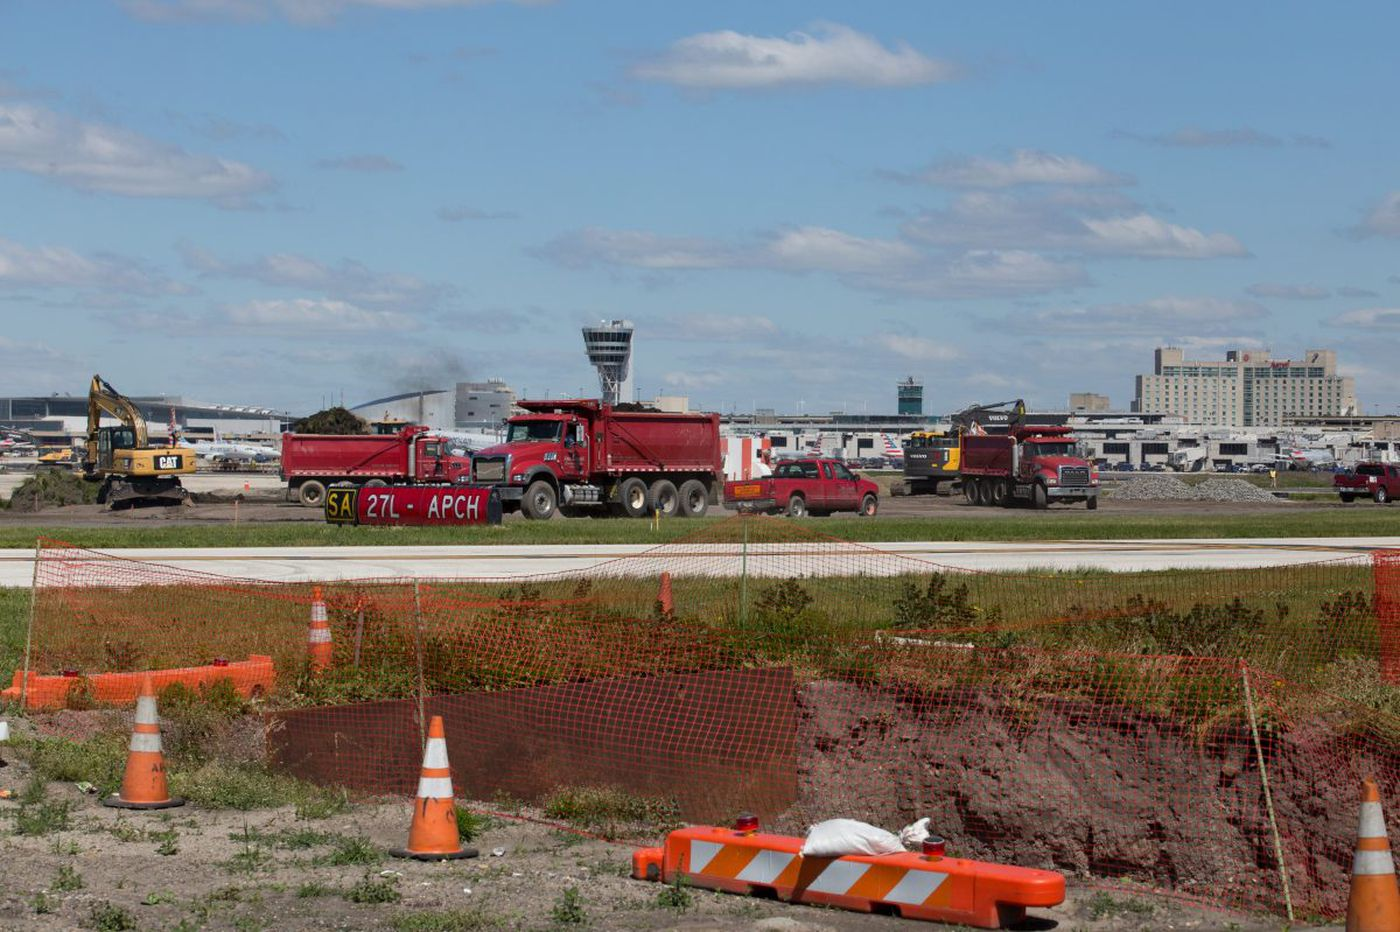 Philly airport gets $16.5 million federal grant for runway improvements